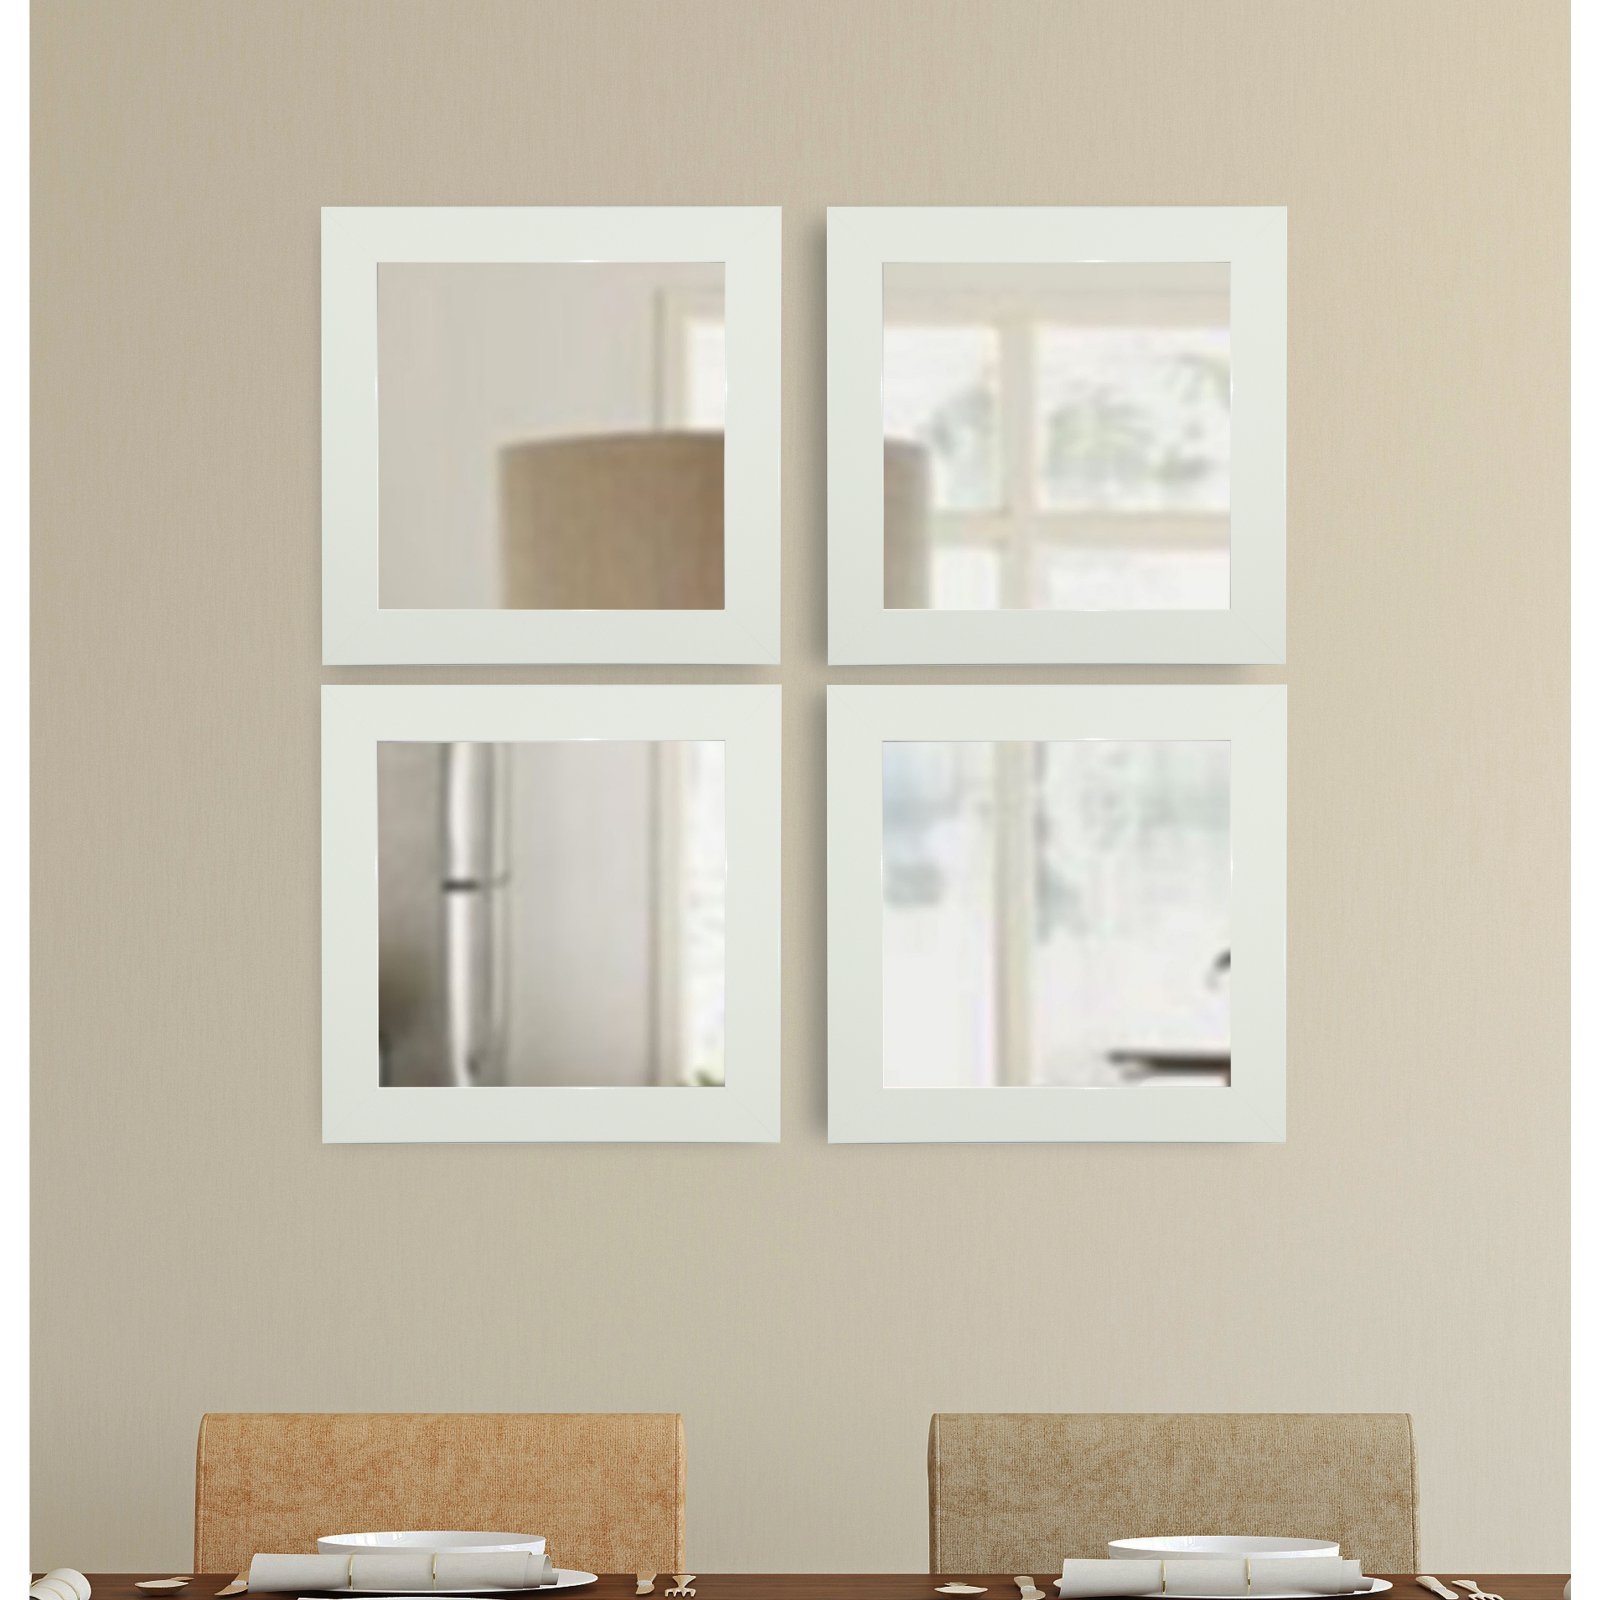 Recent Rayne Mirrors Delta Square Wall Mirror – Set Of 4 Throughout Wall Mirror Sets Of 4 (Gallery 20 of 20)